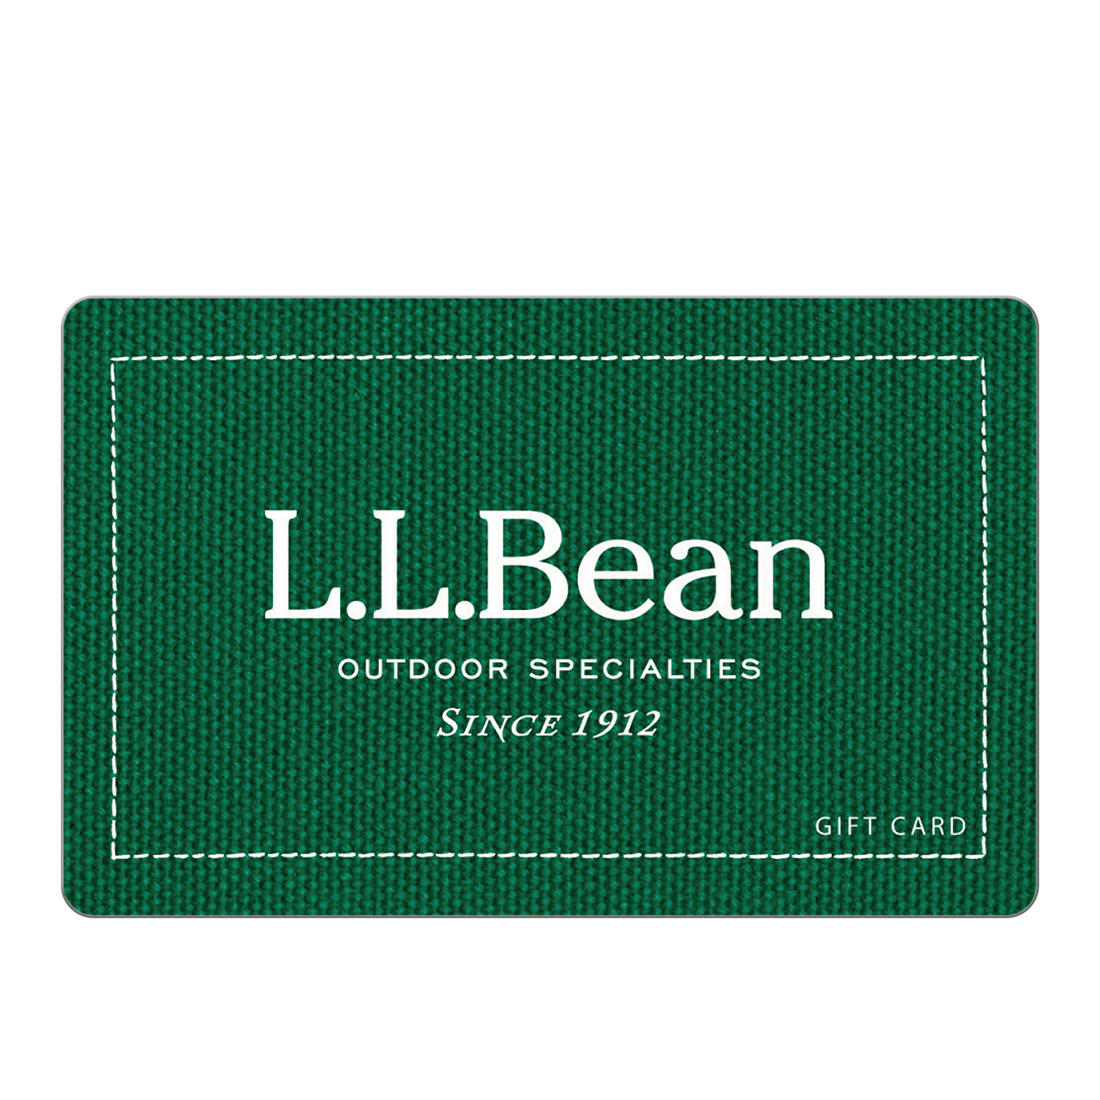 photograph about Llbean Printable Coupon called L.L. Bean $50 Present Card